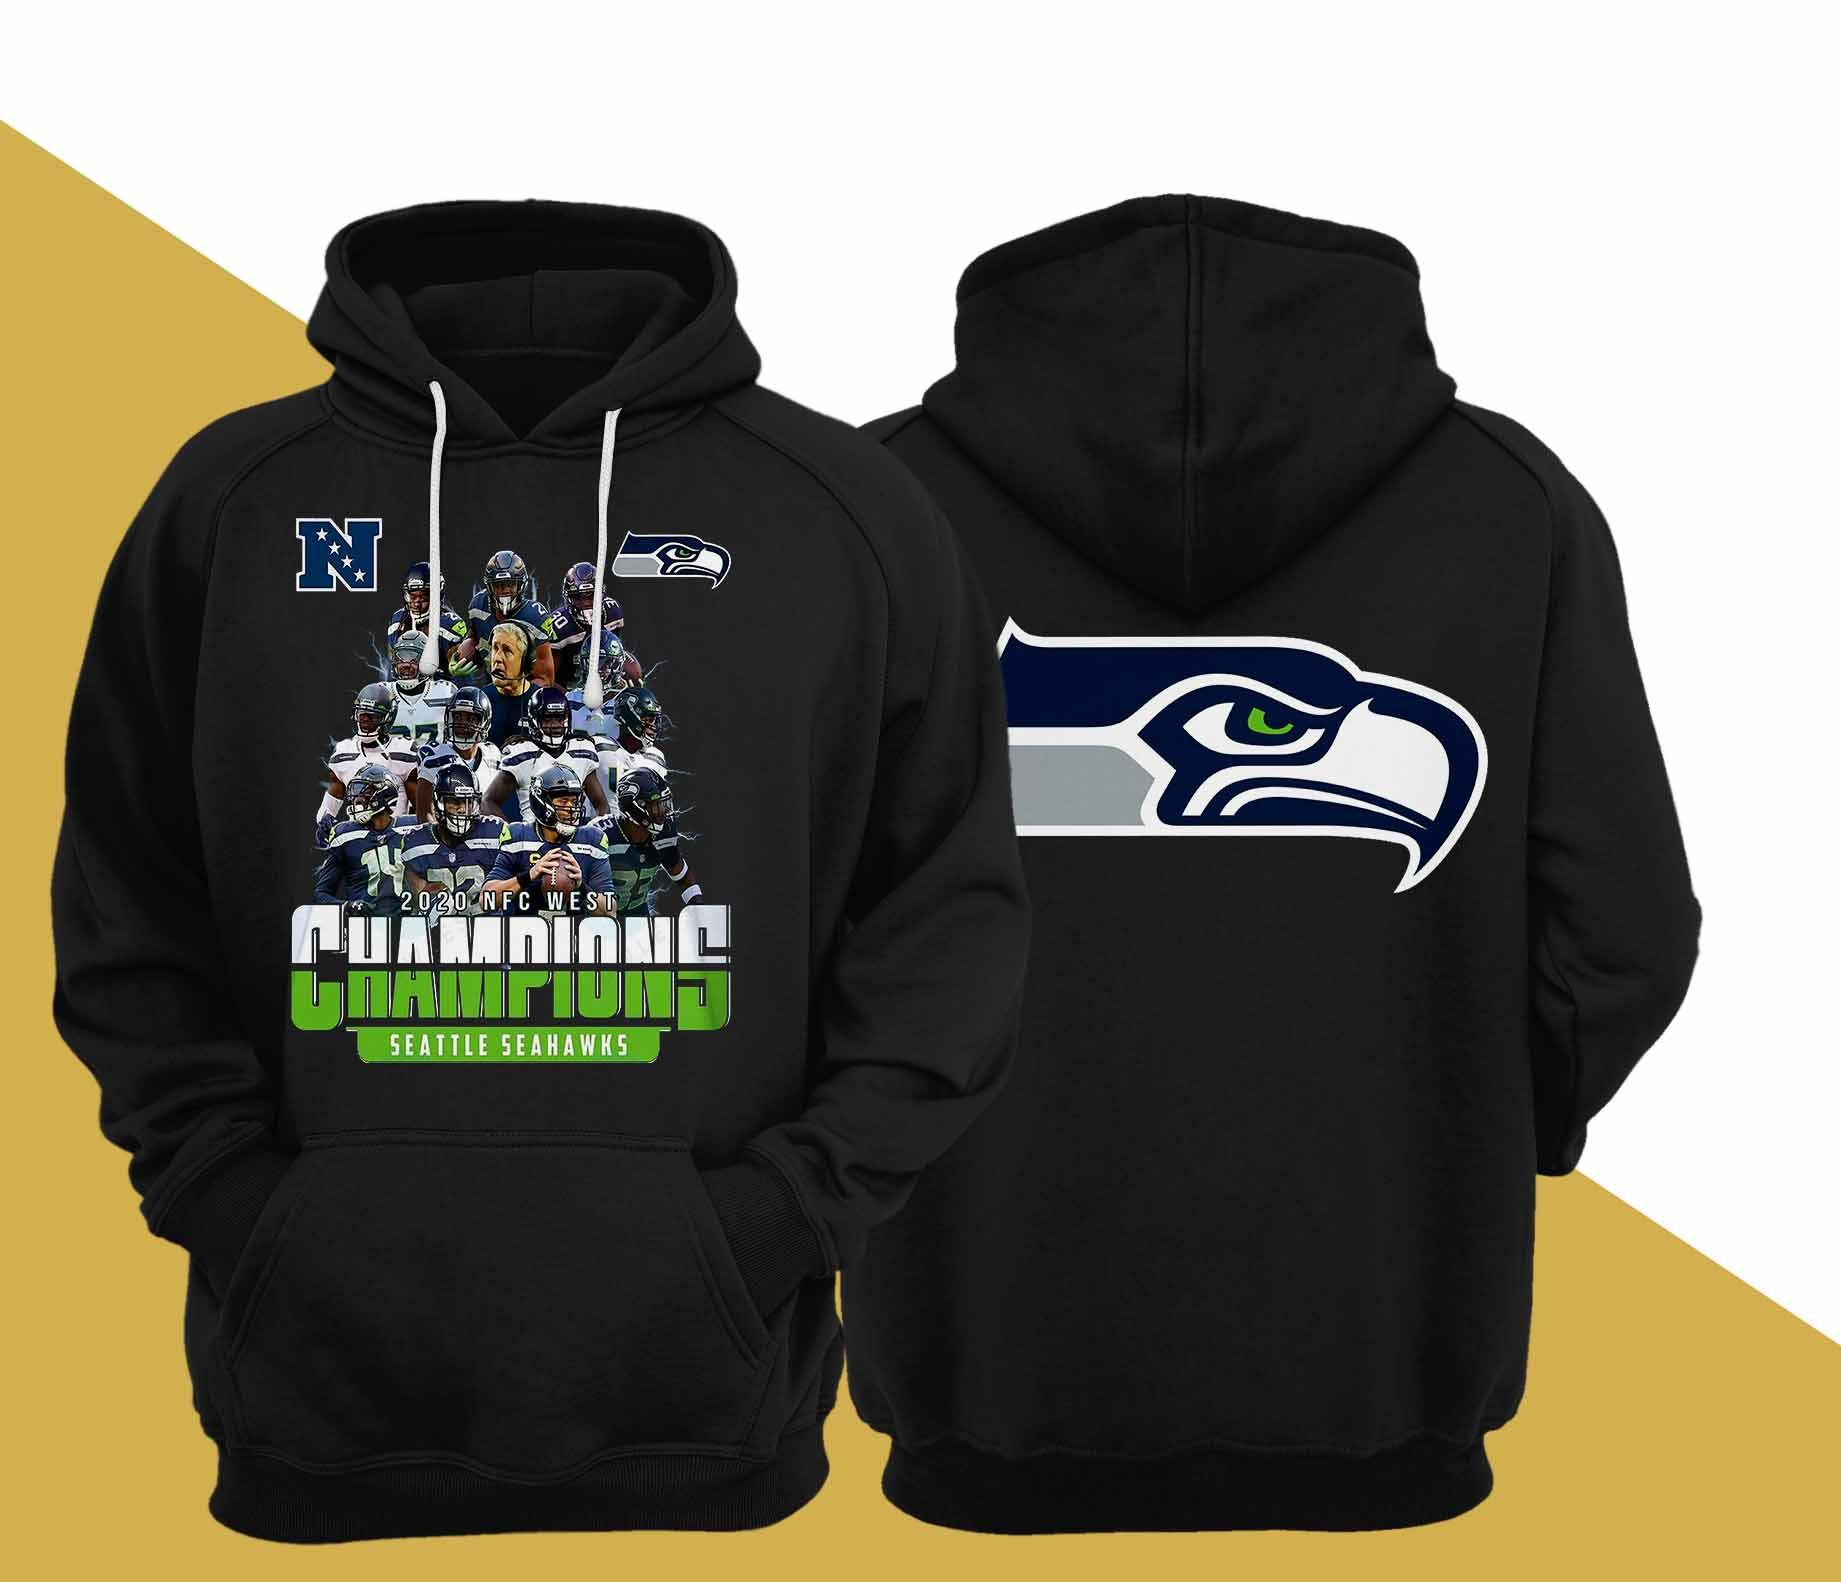 2020 Nfc West Champions Seattle Seahawks Hoodie